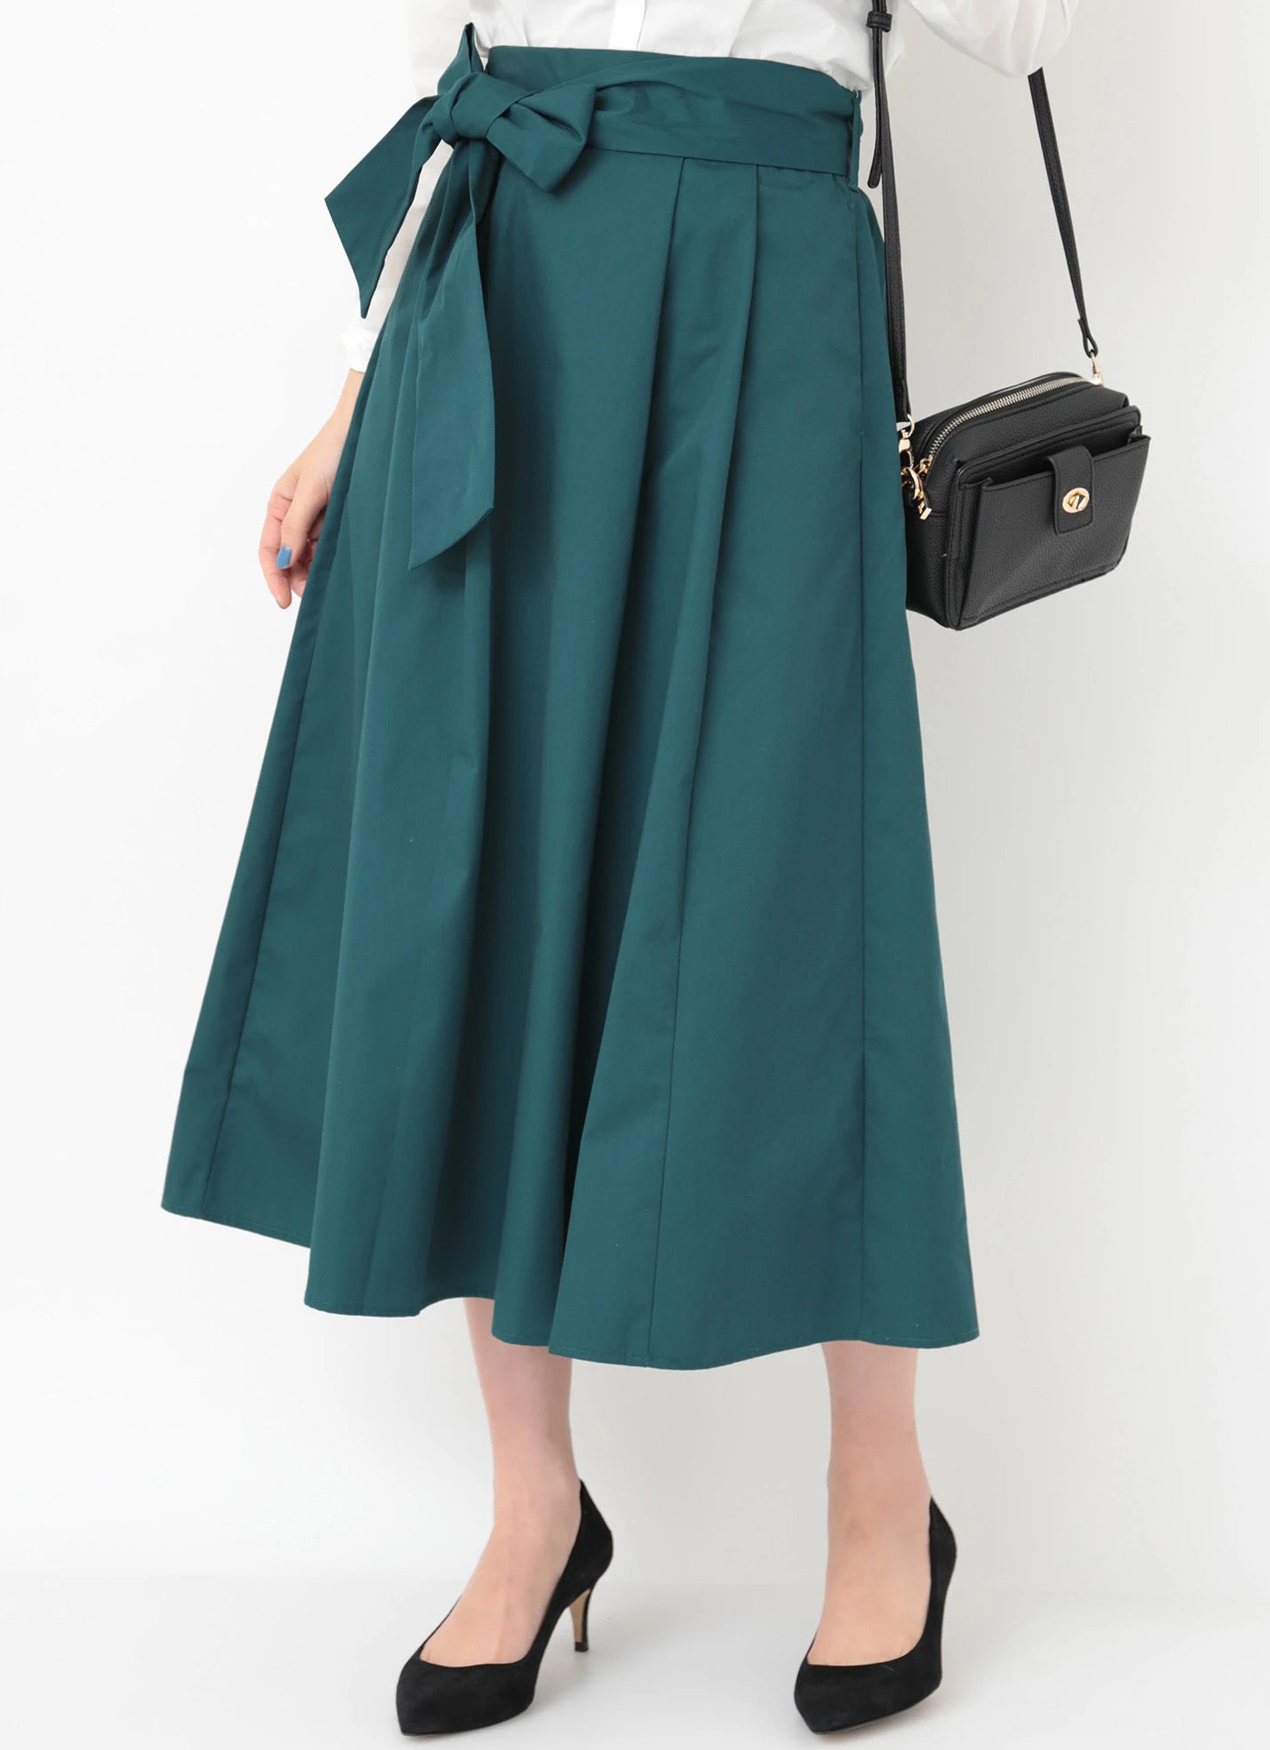 Earth, Music & Ecology Maya Skirt - Blue Green